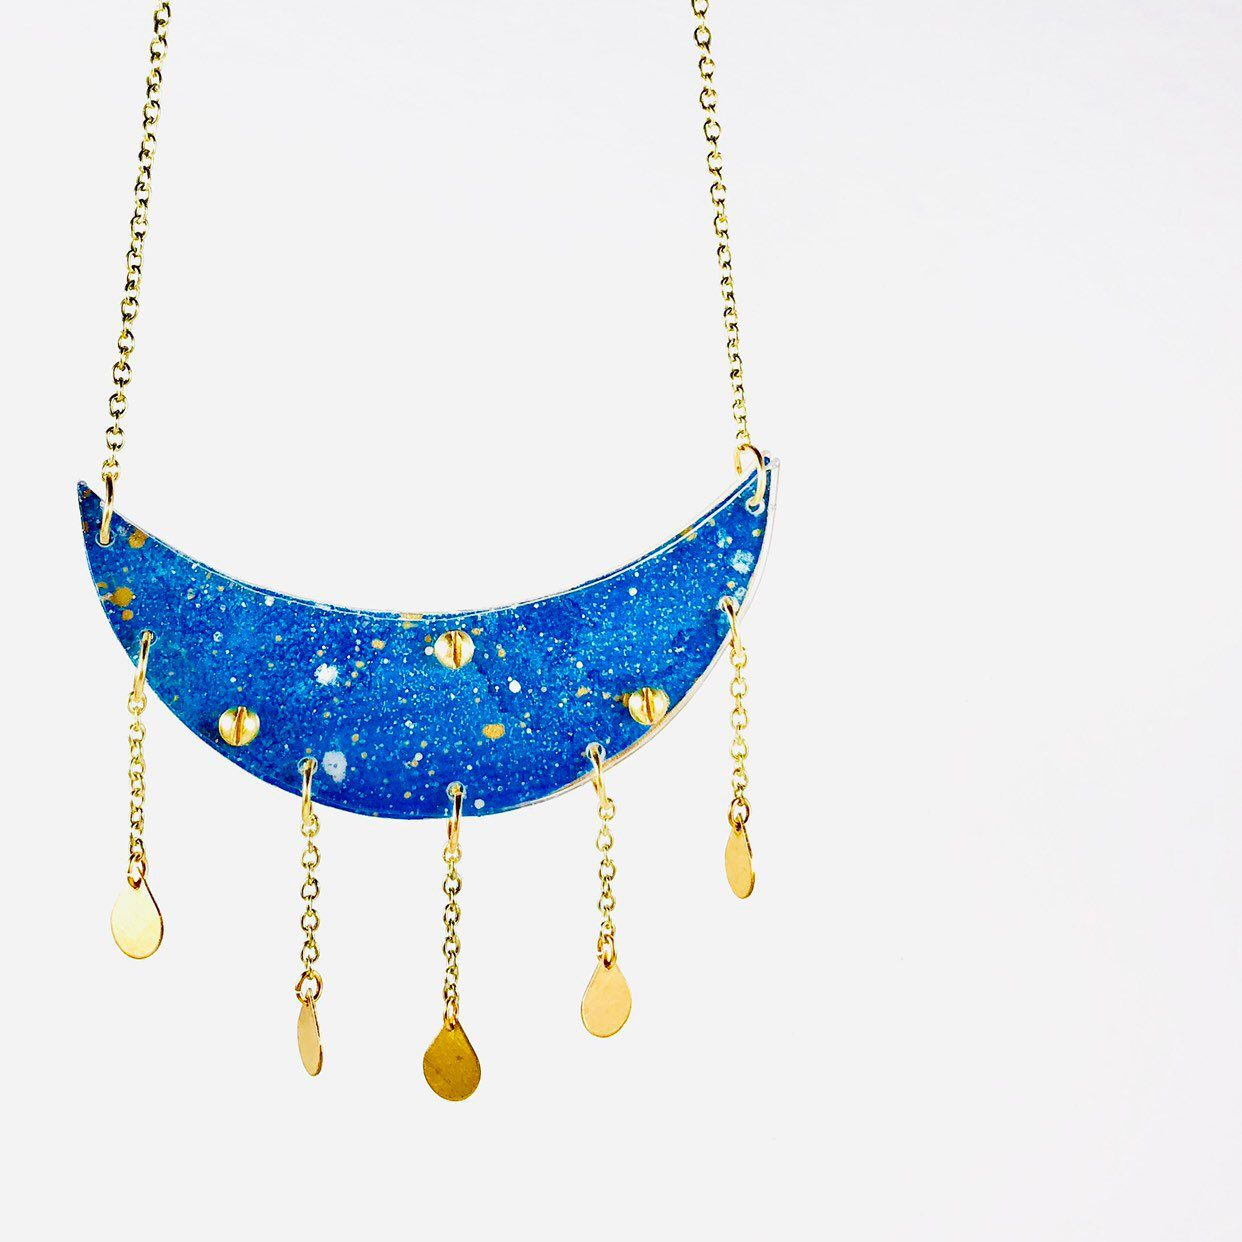 Make a wish Traveler Gift Sacred Geometry S Layered Necklace set Galaxy Jewelry Gift necklace Outer Space Outer space jewelry